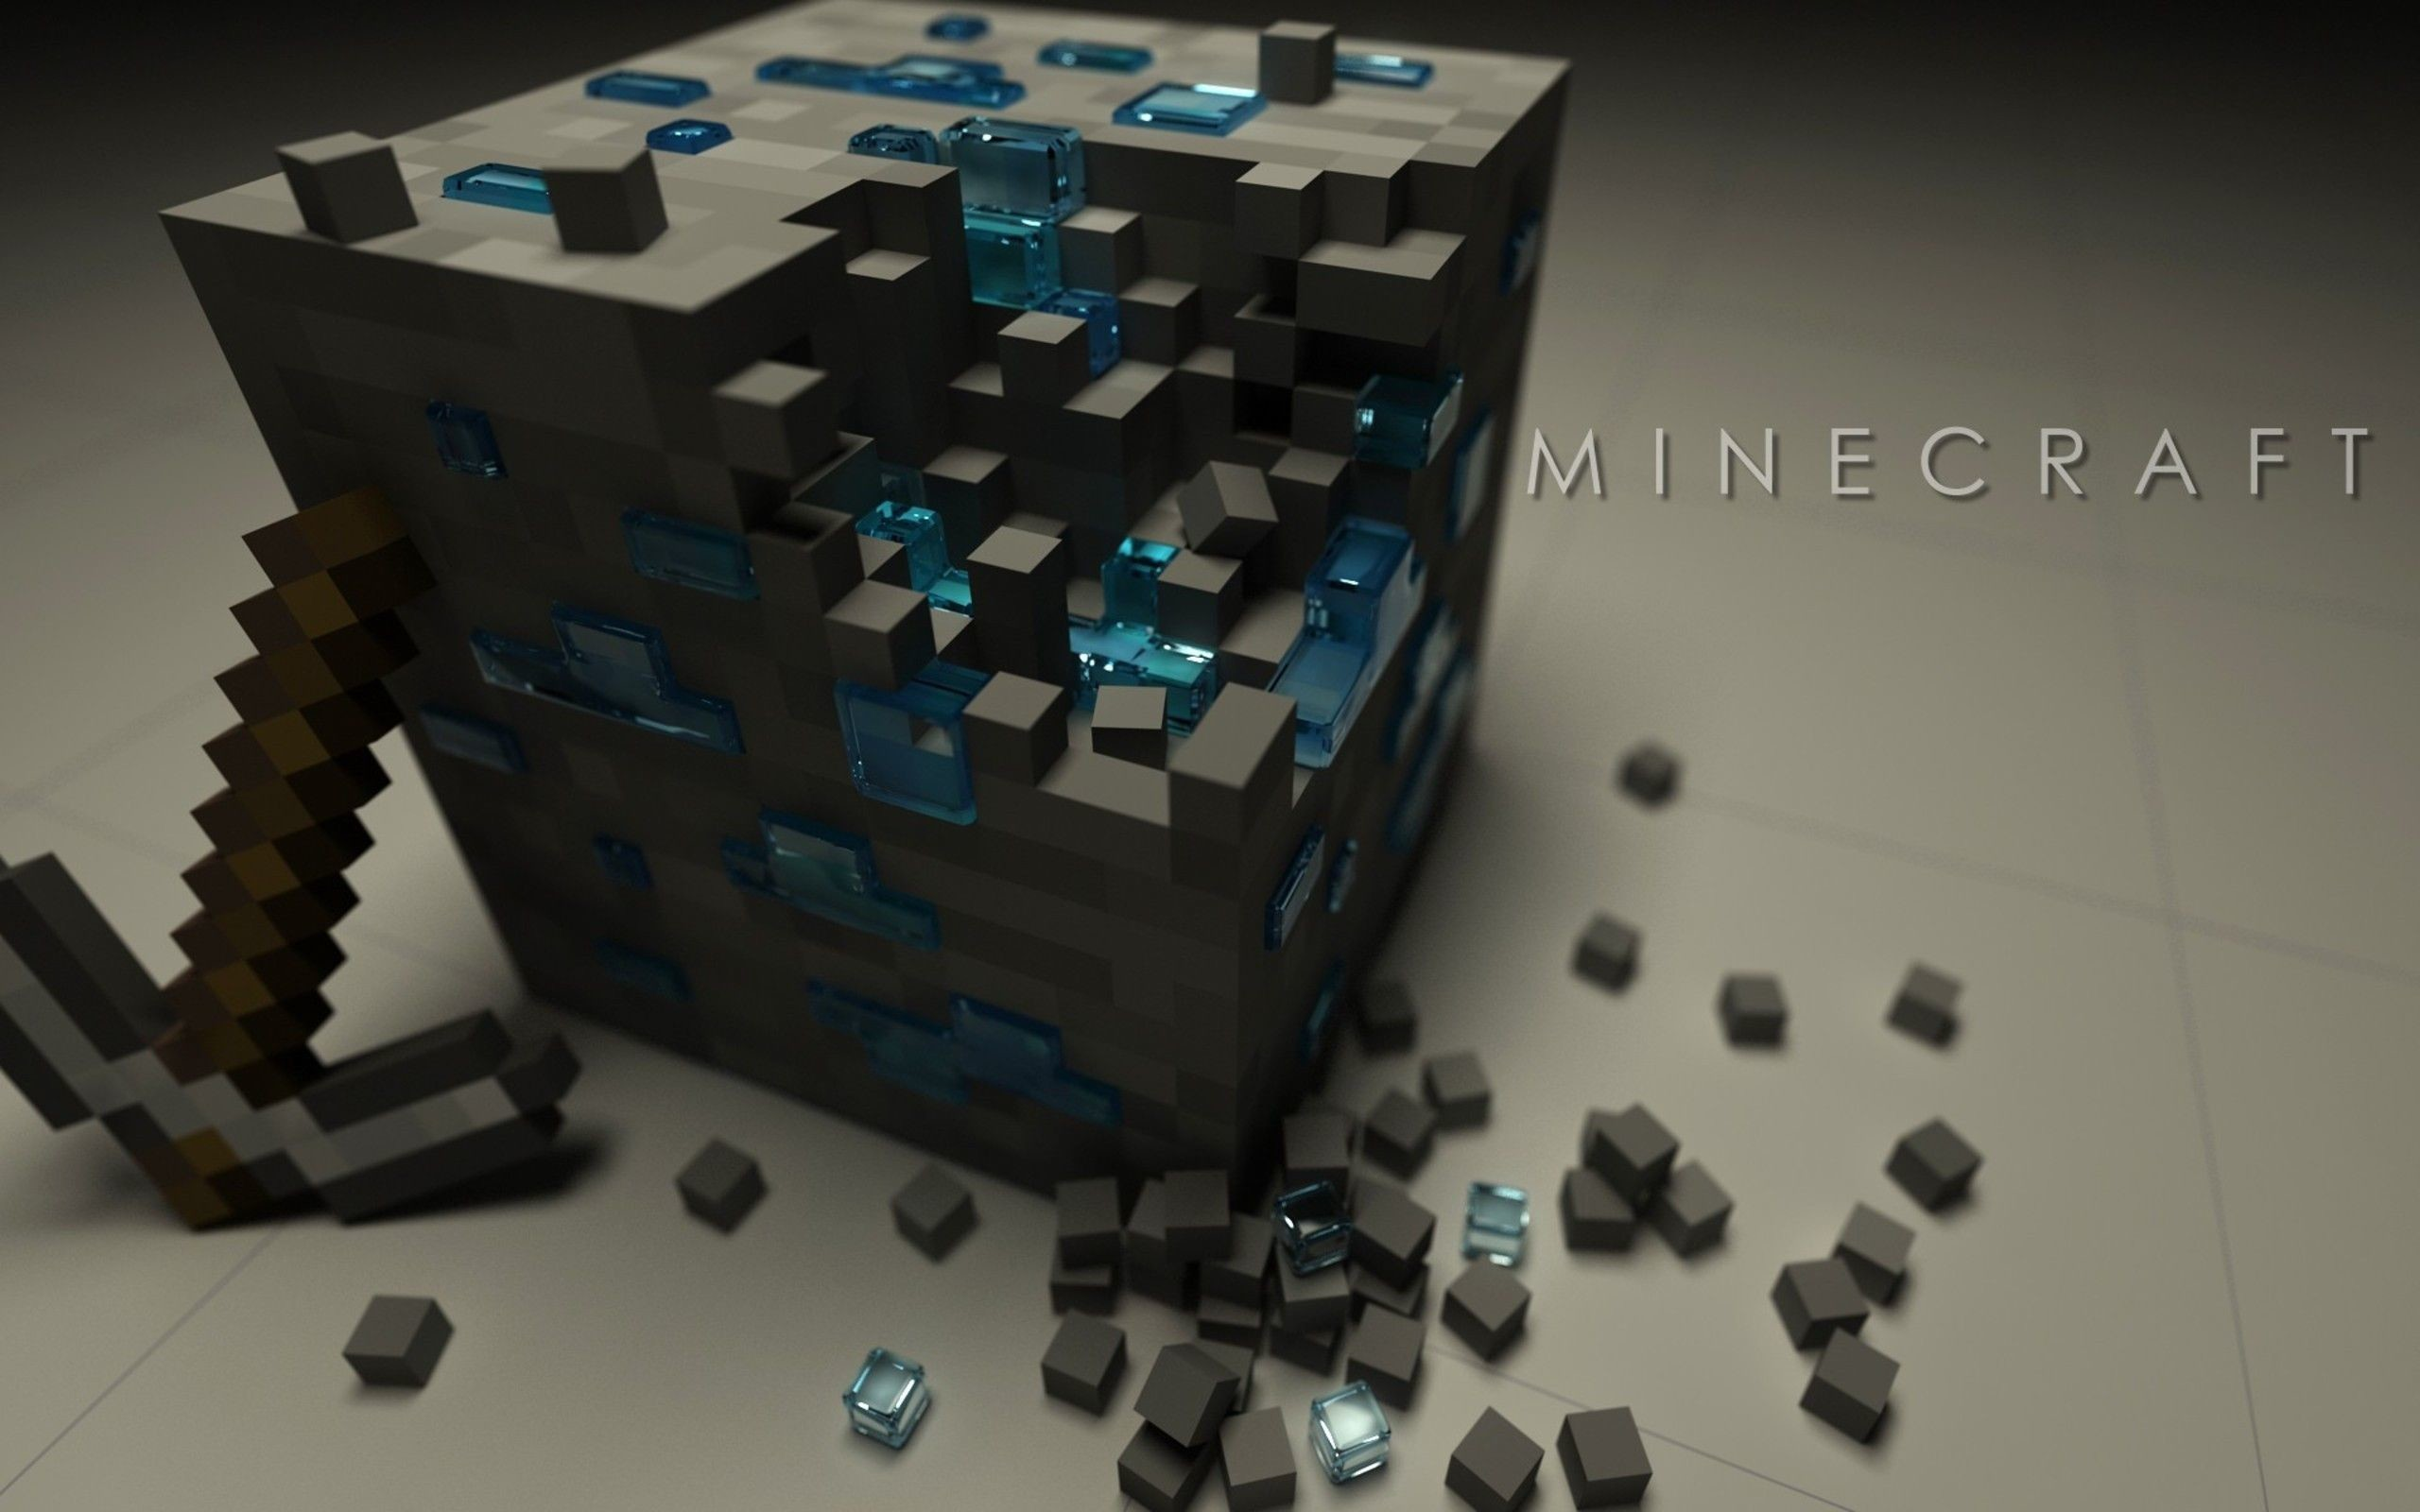 2560x1600 Minecraft Wallpapers - Full HD wallpaper search